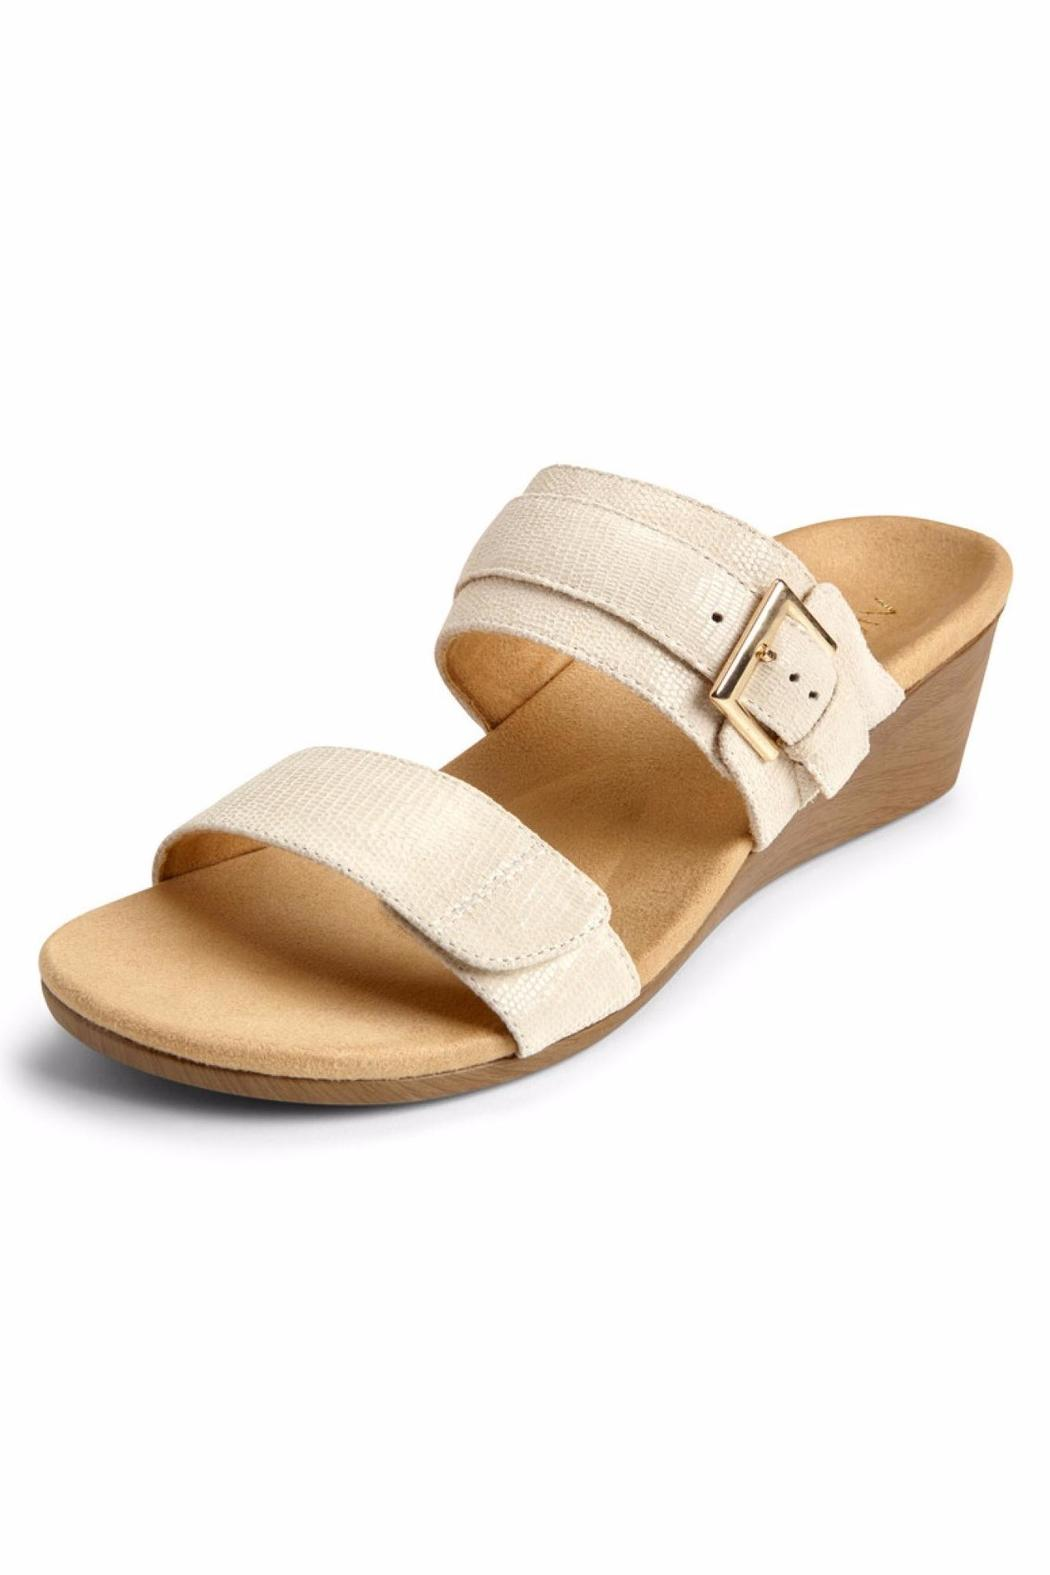 886b28f2c332 Vionic Natoma Wedge Sandal from Edmonton by Modern Sole — Shoptiques